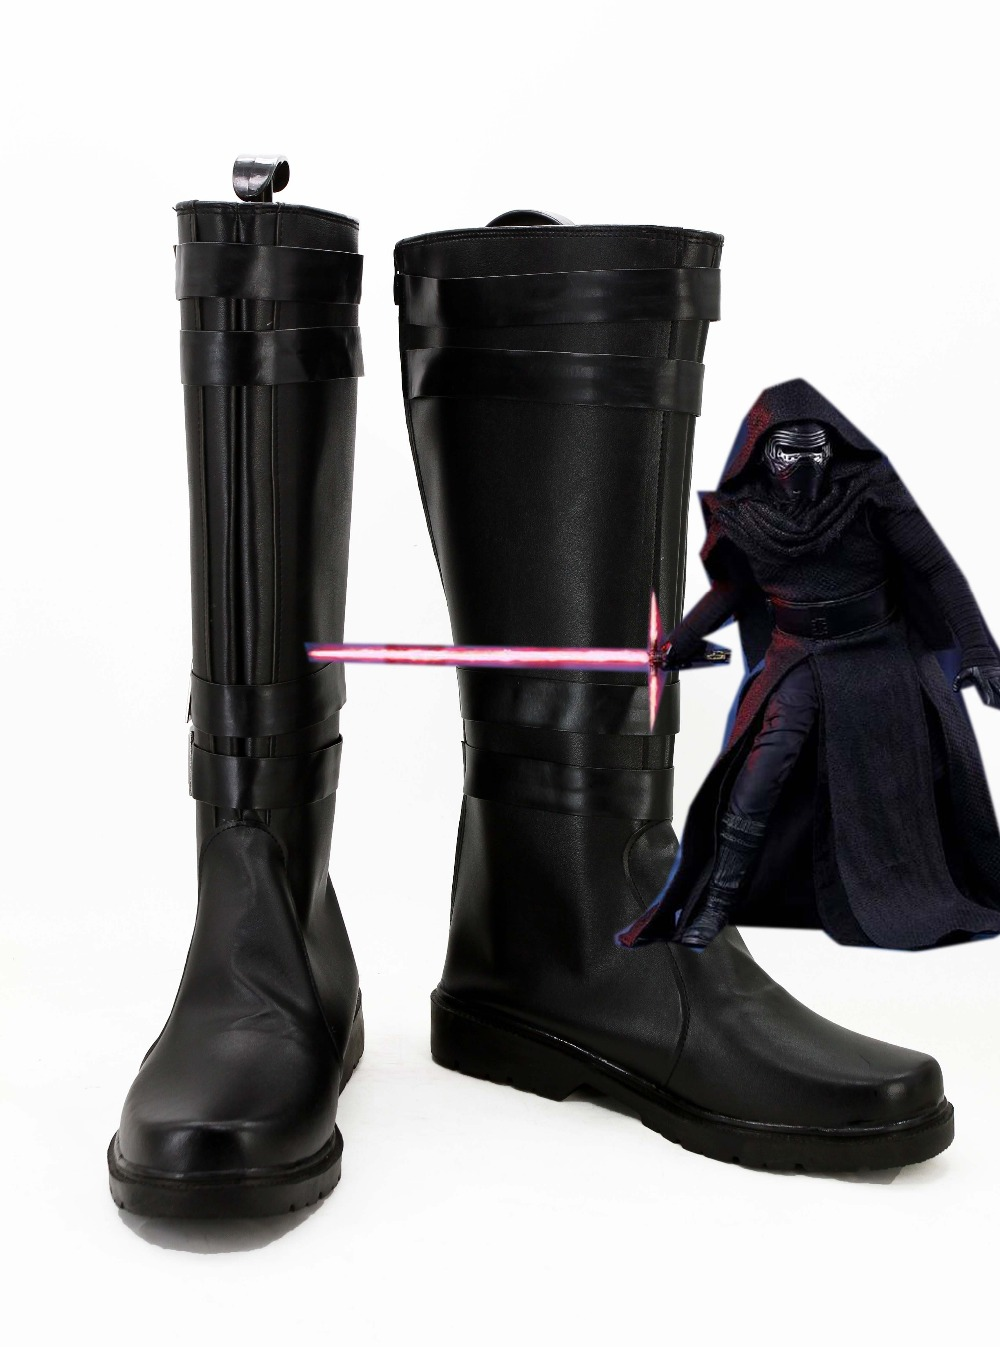 Star Wars 7: Force Trezeste Kylo Ren Bocanci Pantofi Cosplay Costum Custom Made